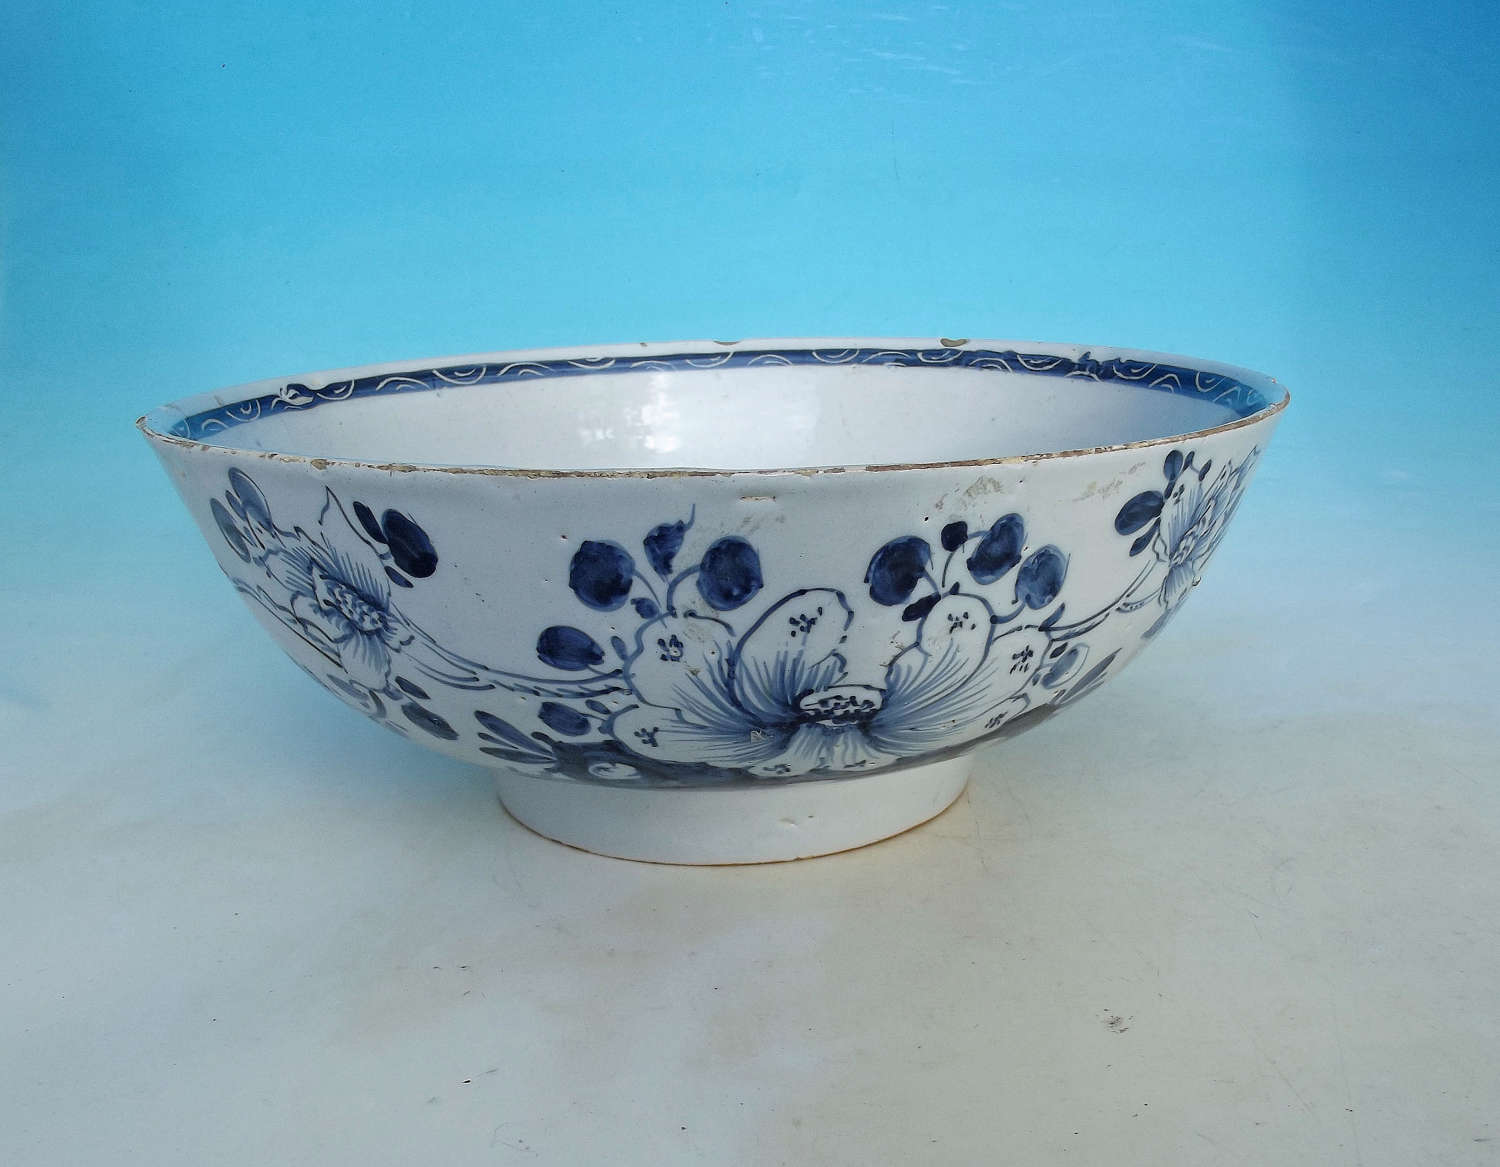 A Mid 18thc Antique Pottery Delftware Punch Bowl. English. C1740-50.